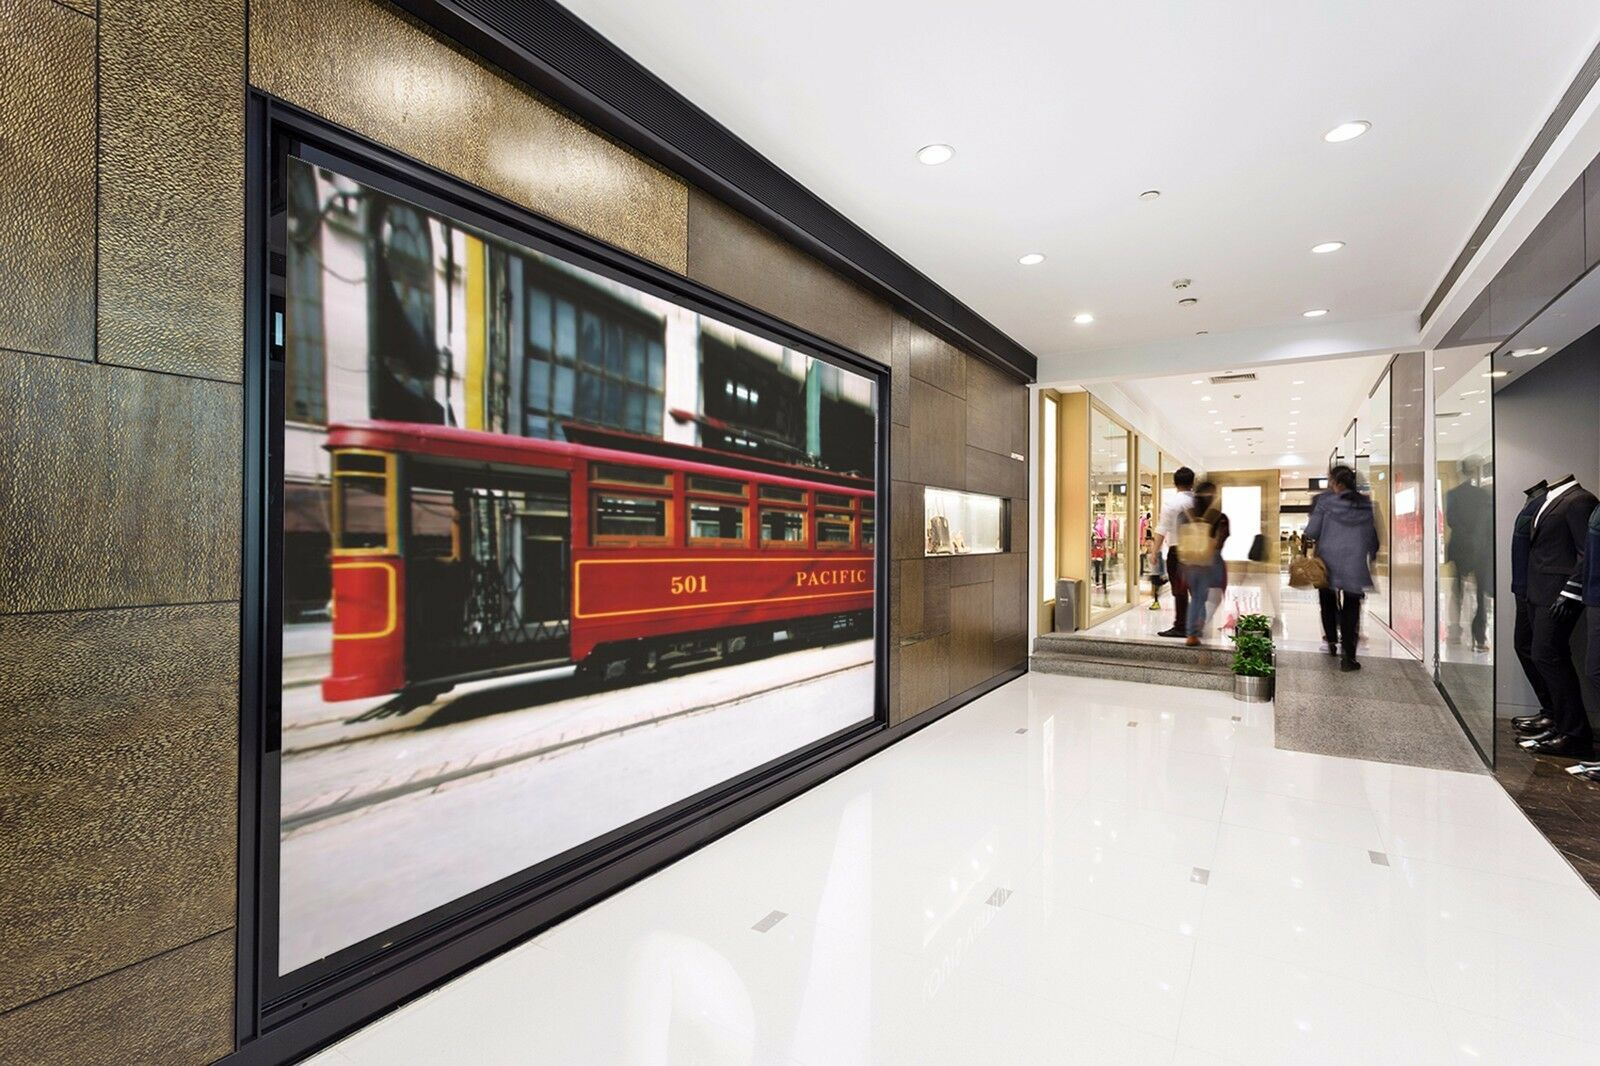 3D ROT bus Street 342 Wall Paper Wall Print Decal Wall Deco Indoor Wall Murals